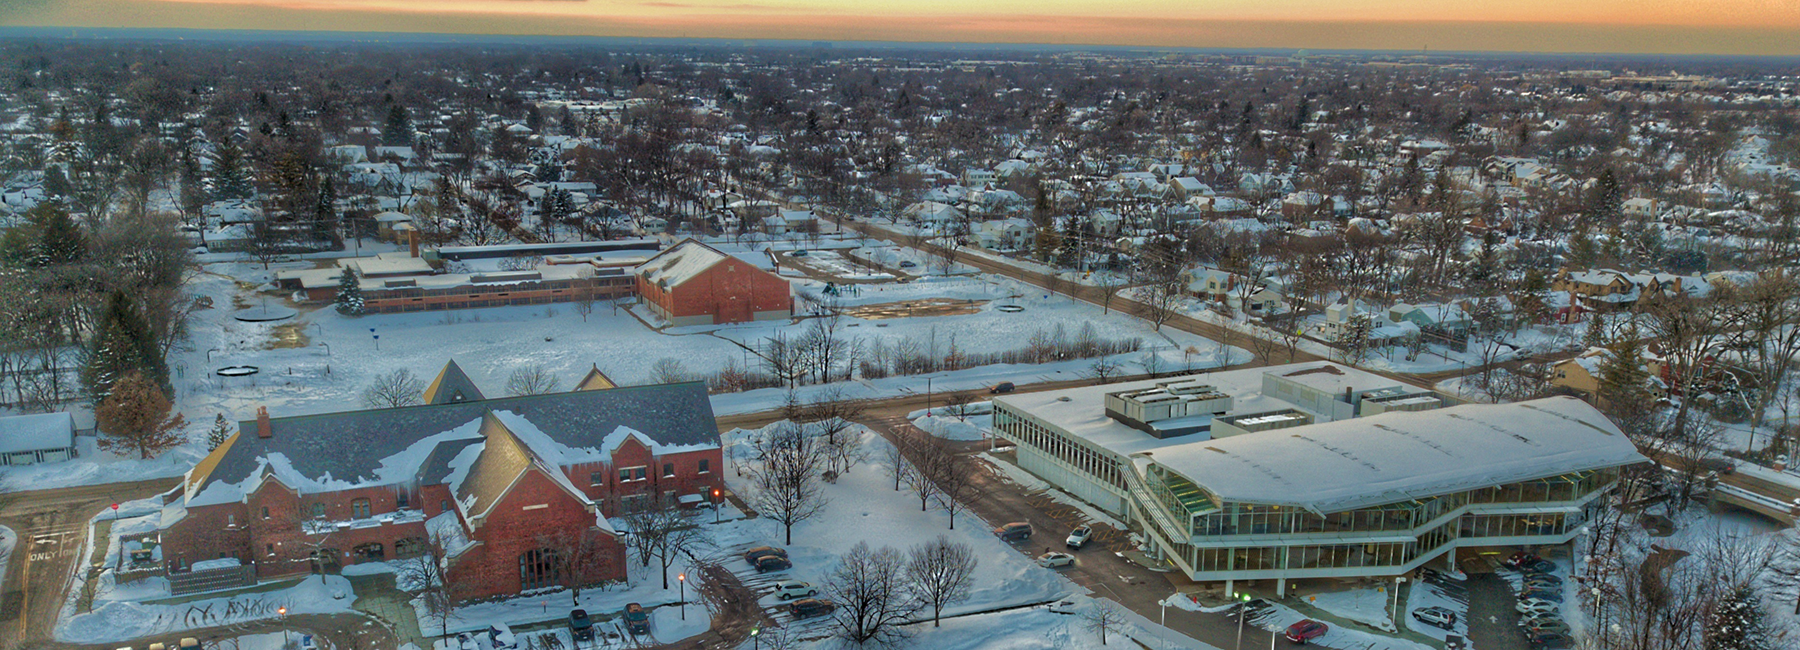 Drone Shot of Village Hall in Winter Looking West